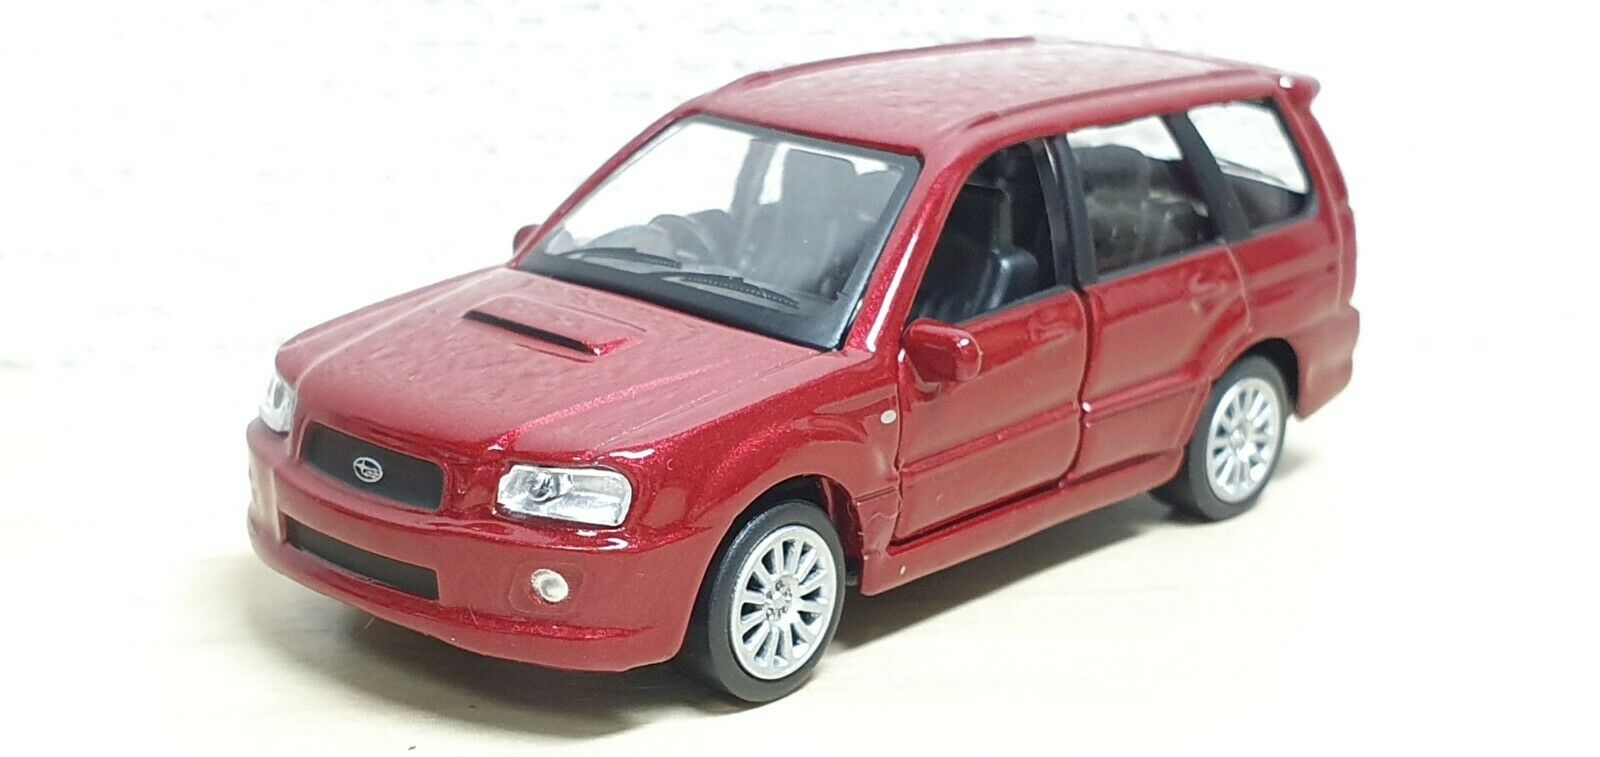 1 59 Konami J Owner's Collection SUBARU FORESTER rot diecast car model